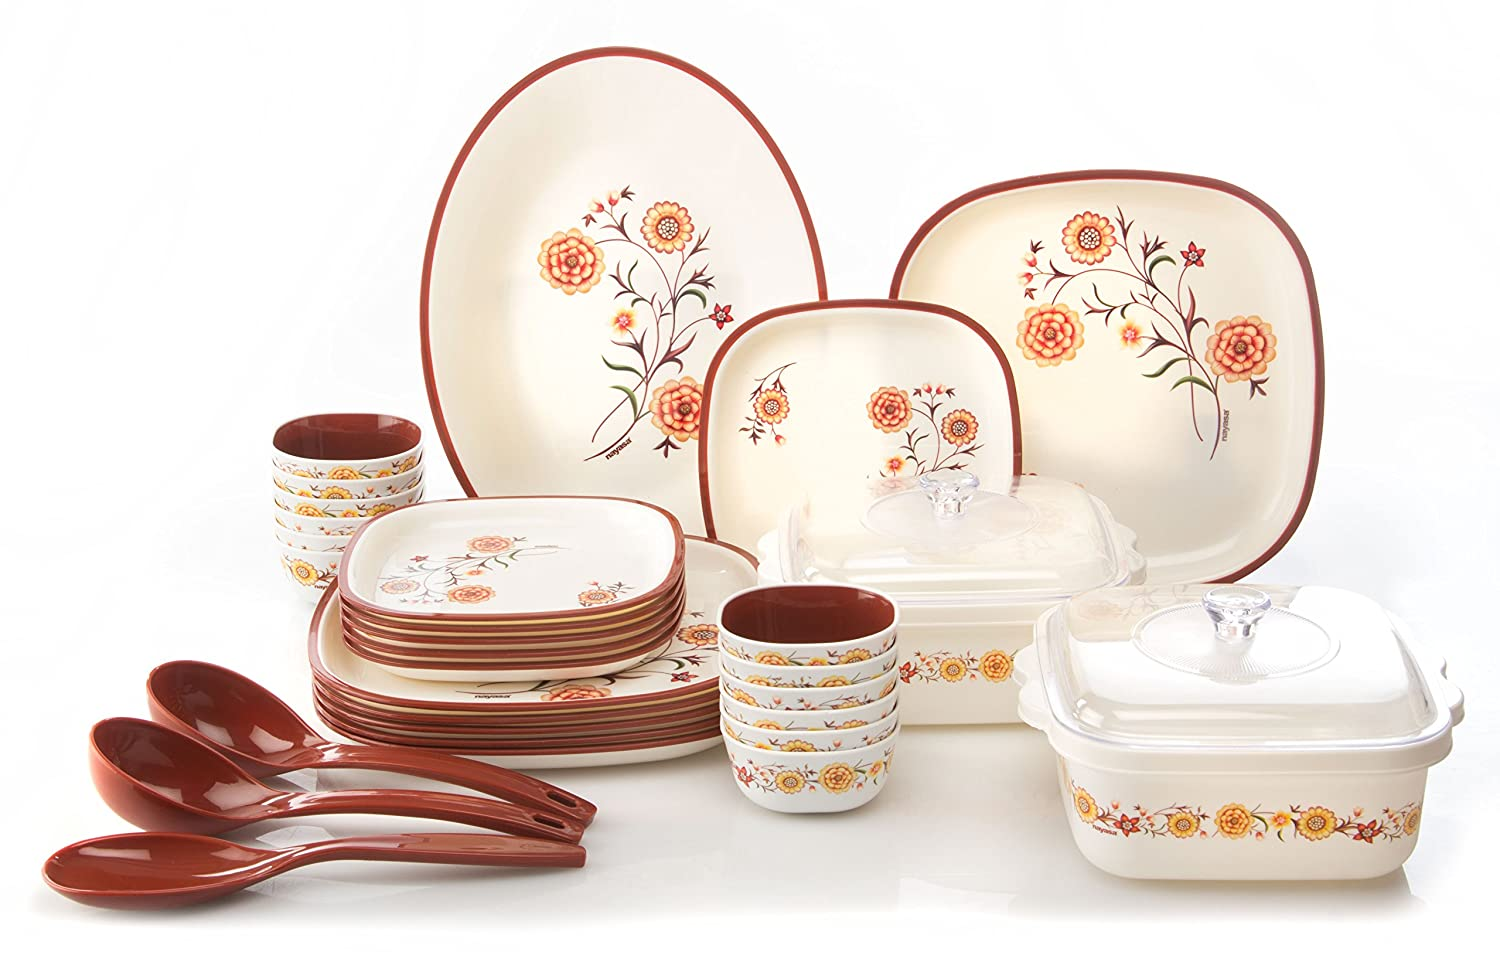 Buy Nayasa Square Printed Plastic Dinner Set 30-Pieces Brown Online at Low Prices in India - Amazon.in  sc 1 st  Amazon.in & Buy Nayasa Square Printed Plastic Dinner Set 30-Pieces Brown ...